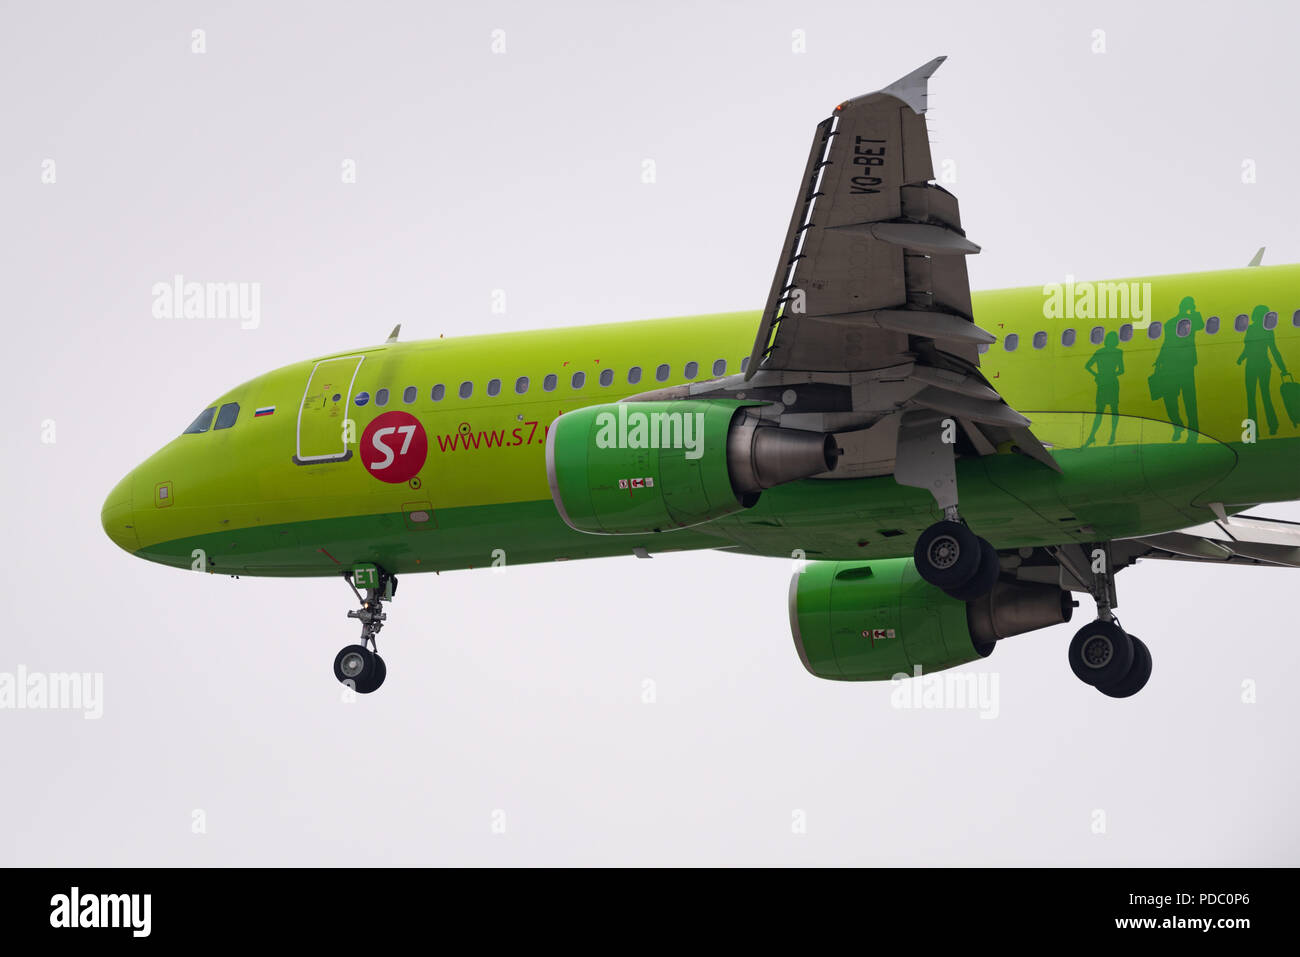 Novosibirsk, Russia - May 2, 2018: Airbus A320-214 VQ-BET S7 Airlines approaches for landing at the international airport Tolmachevo. - Stock Image